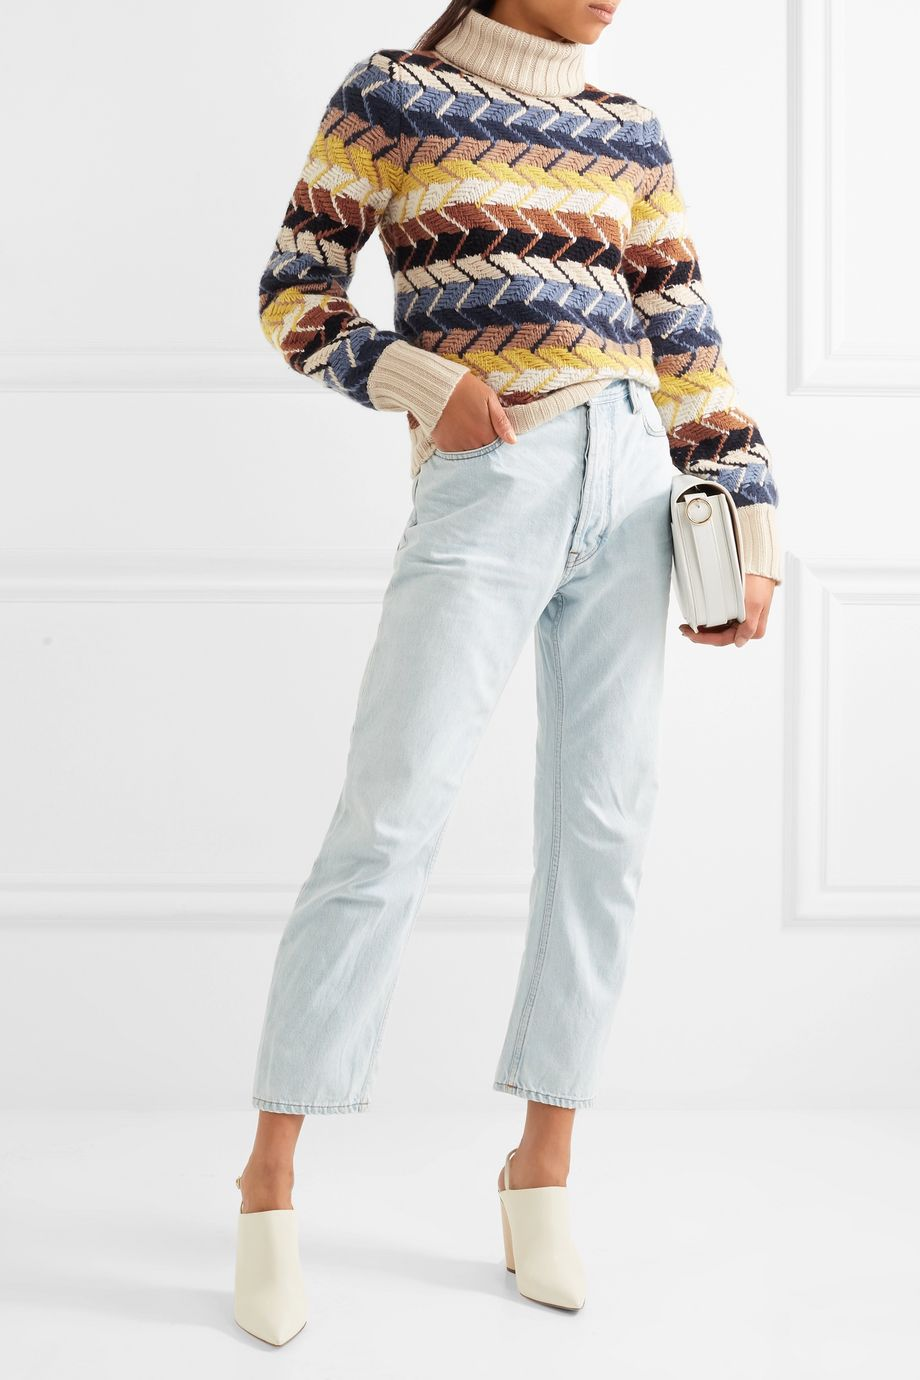 Chloé Merino wool and cashmere-blend turtleneck sweater